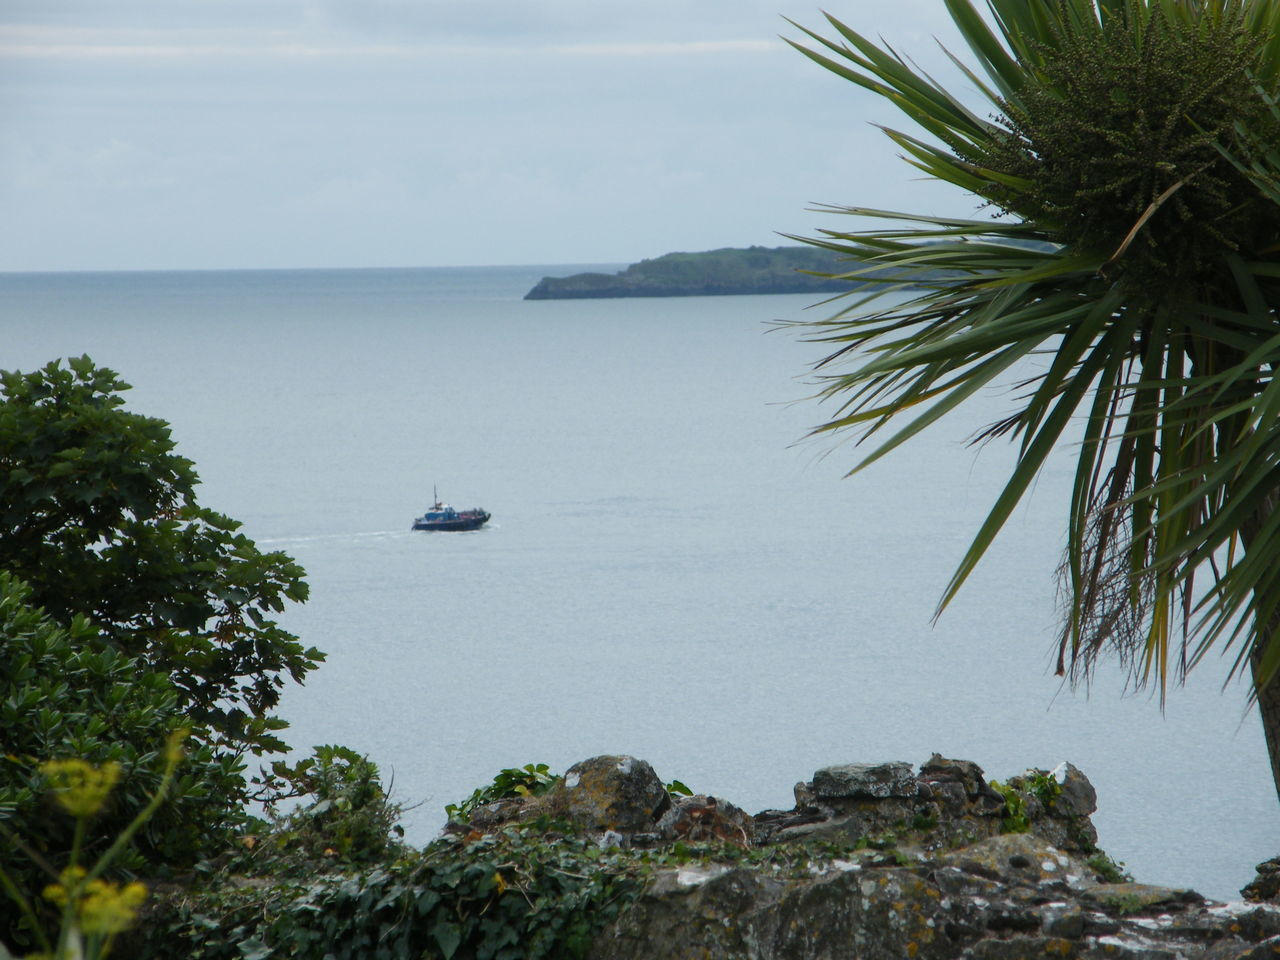 Beach Beauty In Nature Coastline Day Horizon Over Water Mode Of Transport Nature Nautical Vessel No People Outdoors Palm Tree Pembrokeshire Pembrokeshire Coast Pembrokeshire Coastal Path Scenics Sea Sky Tenby Tenby Harbour Tranquil Scene Transportation Water Yacht